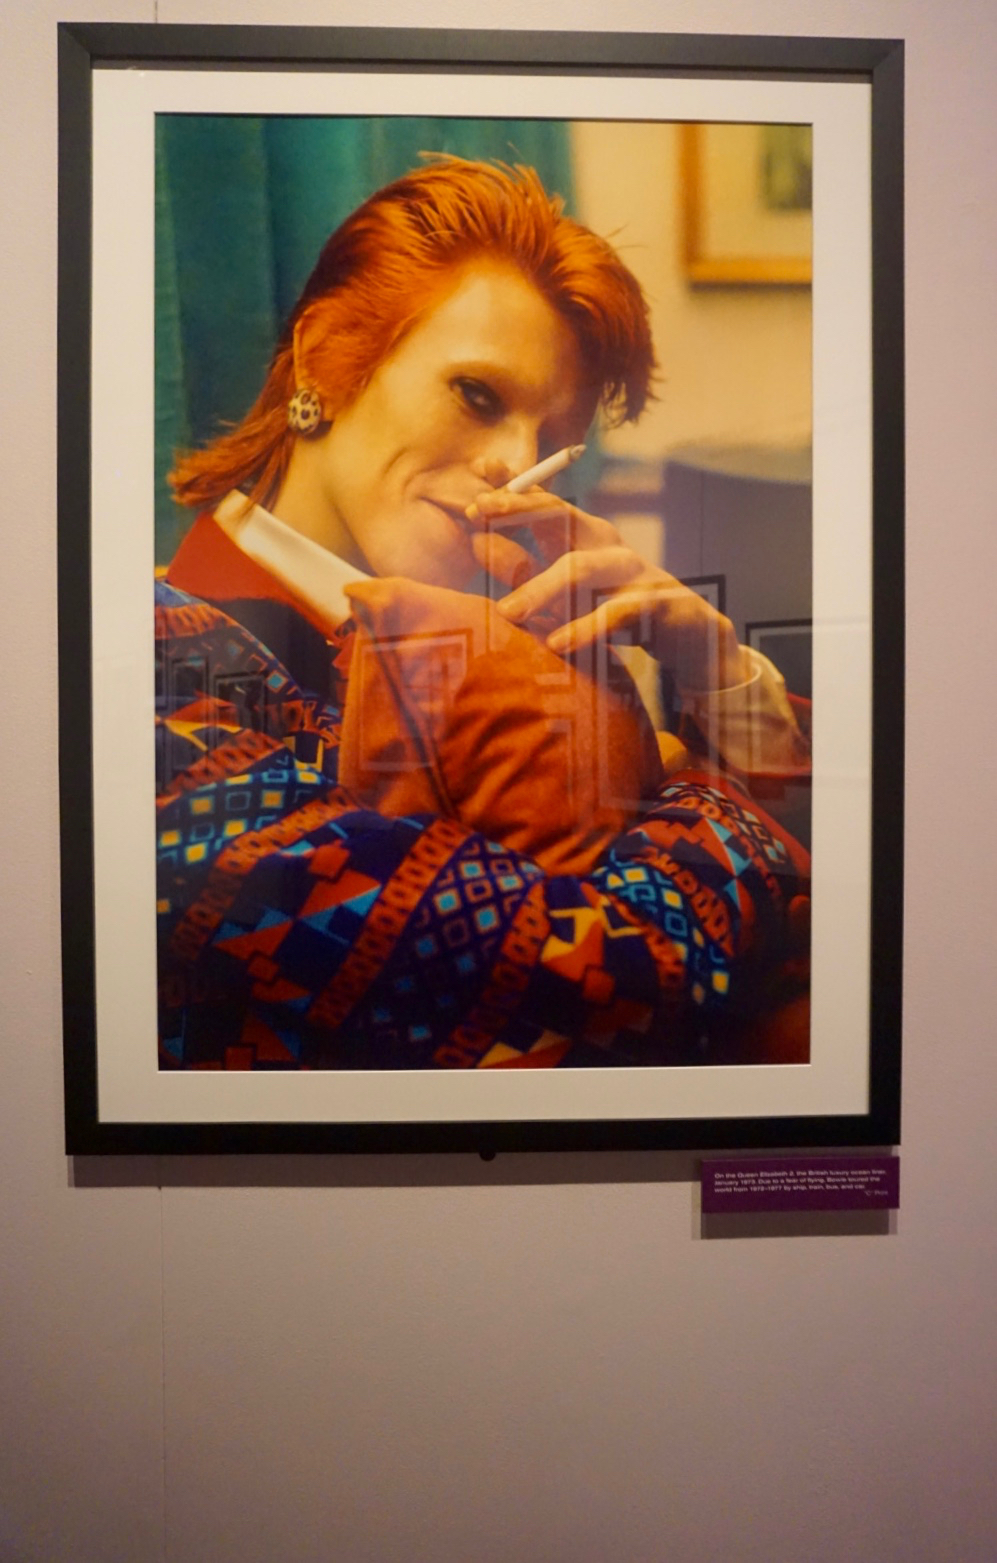 Bowie by Mick Rock at MoPOP Seattle 7.jpg